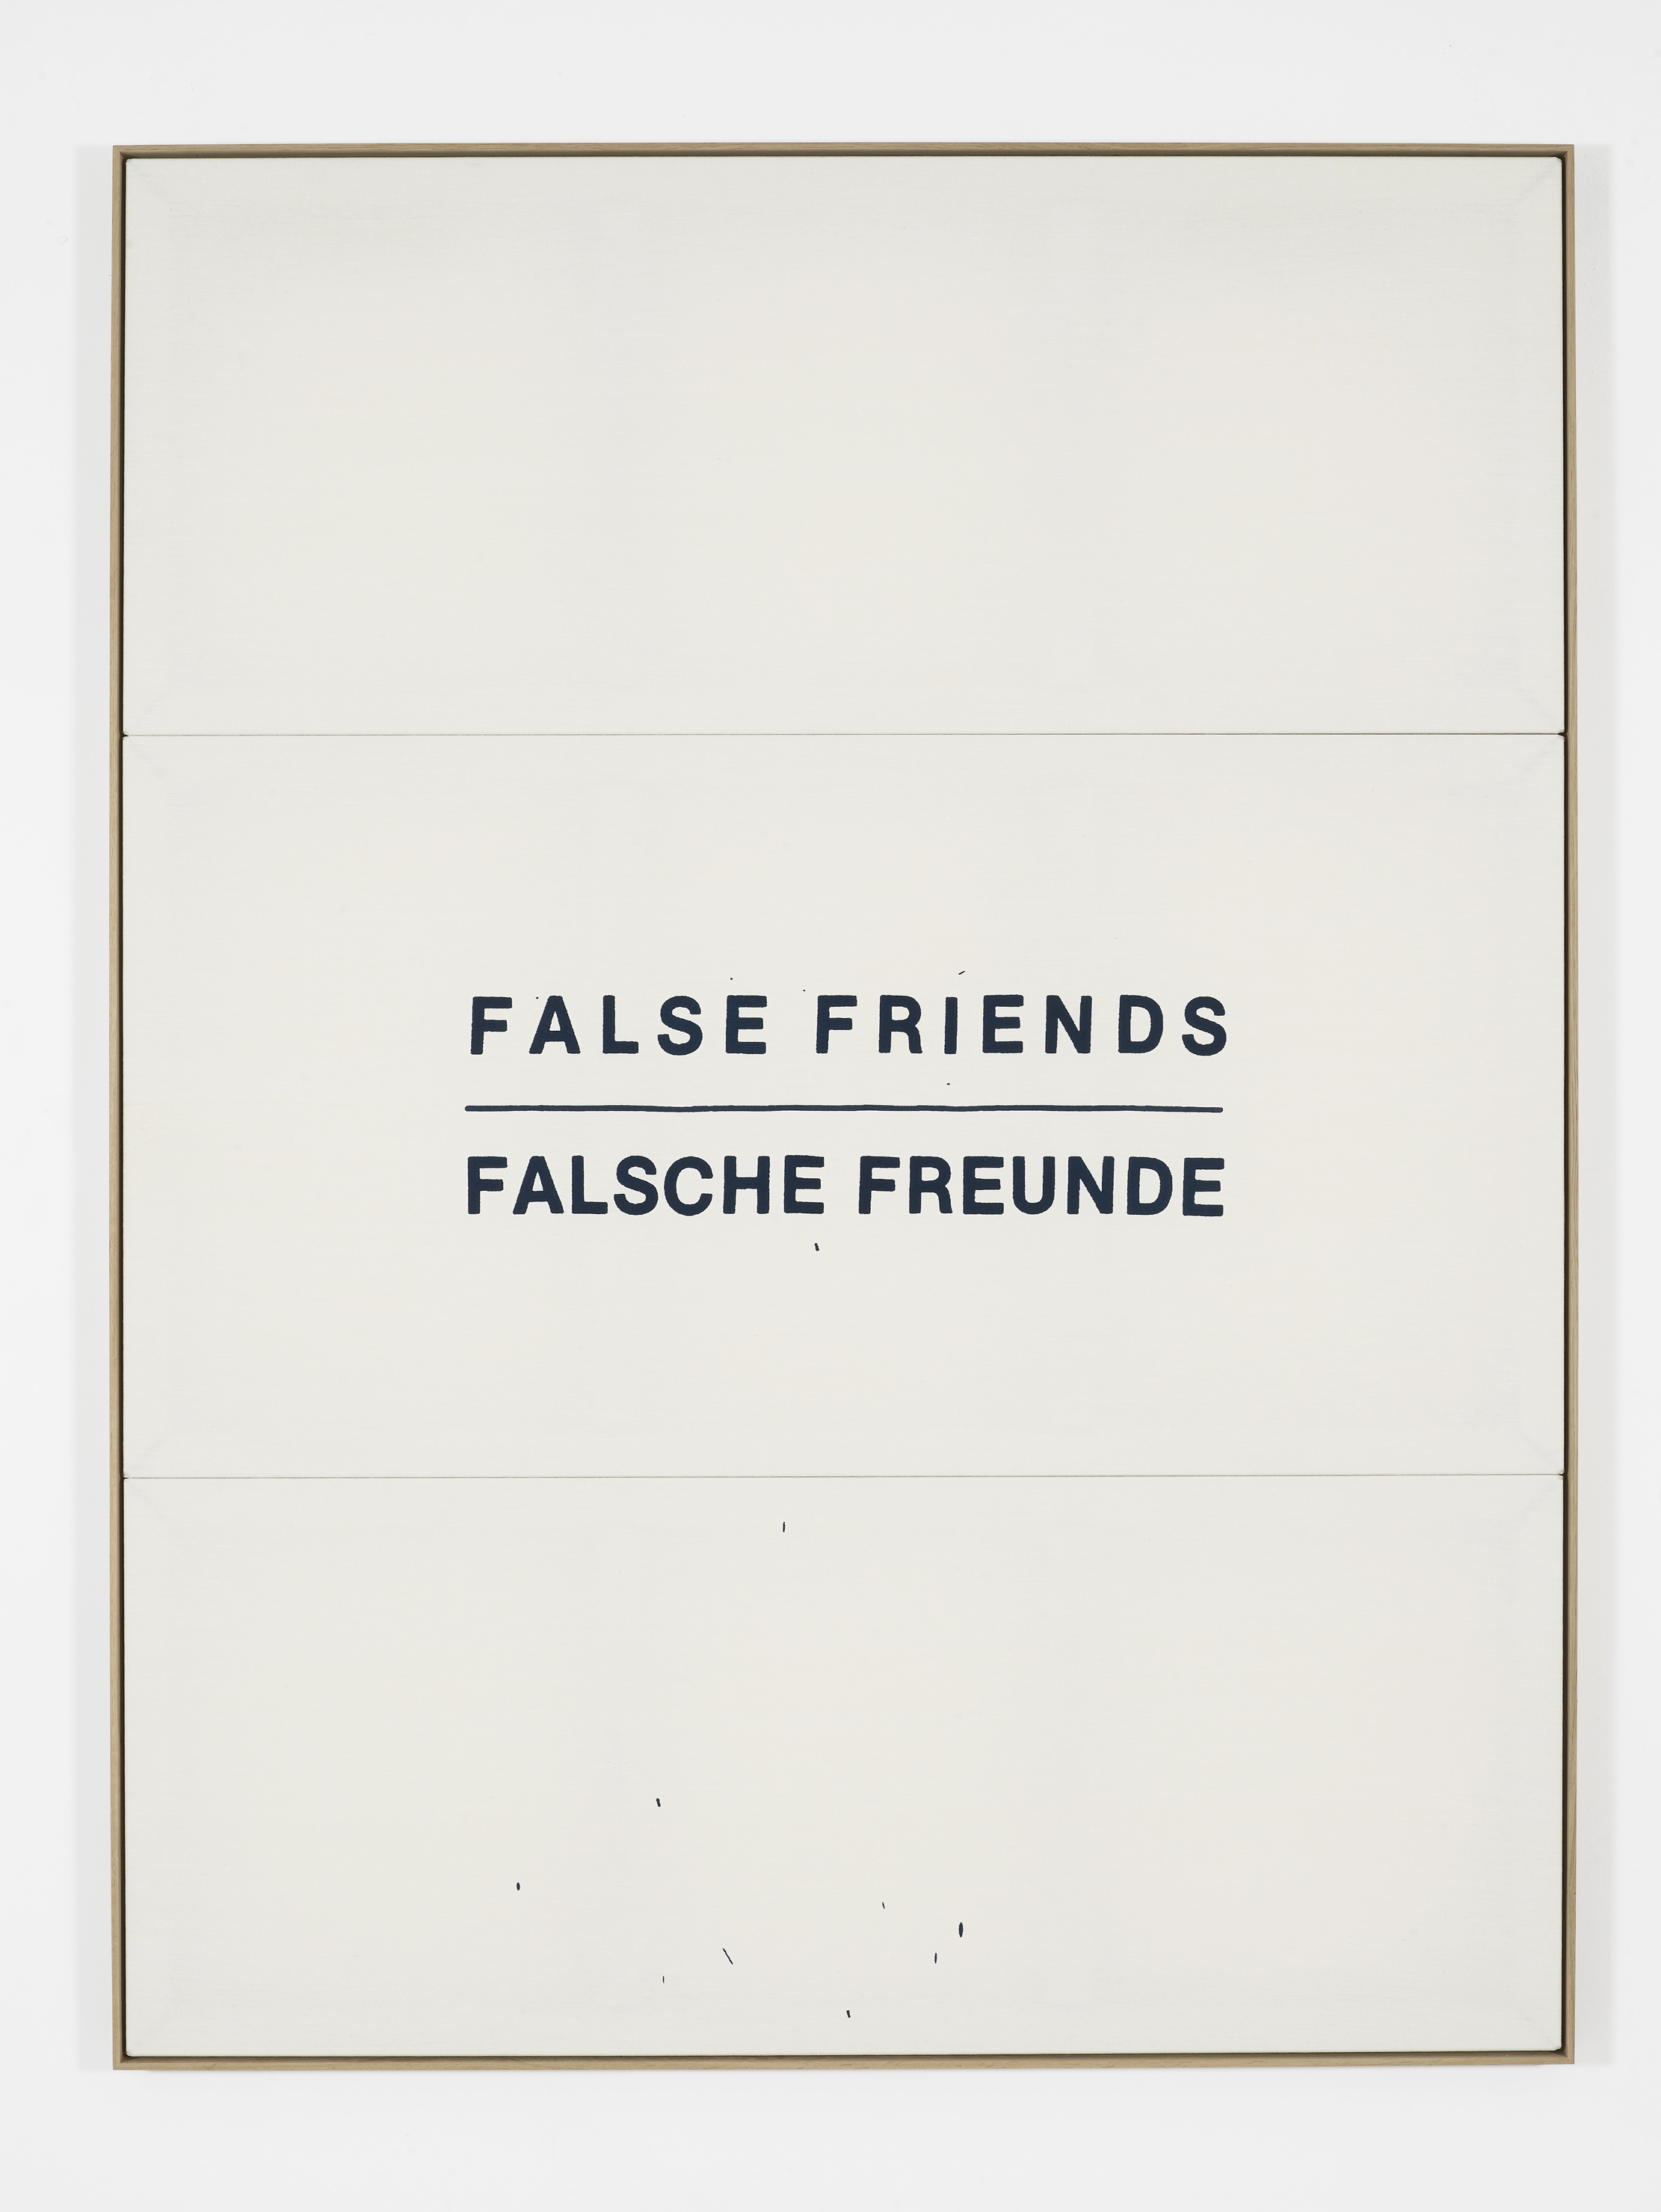 False Friends Falsche Freunde, 2016, Embroidered linen 215 x 164 cm, 84 5/8 x 64 5/8 ins. False Friends Falsche Freunde , Oliver Osborne